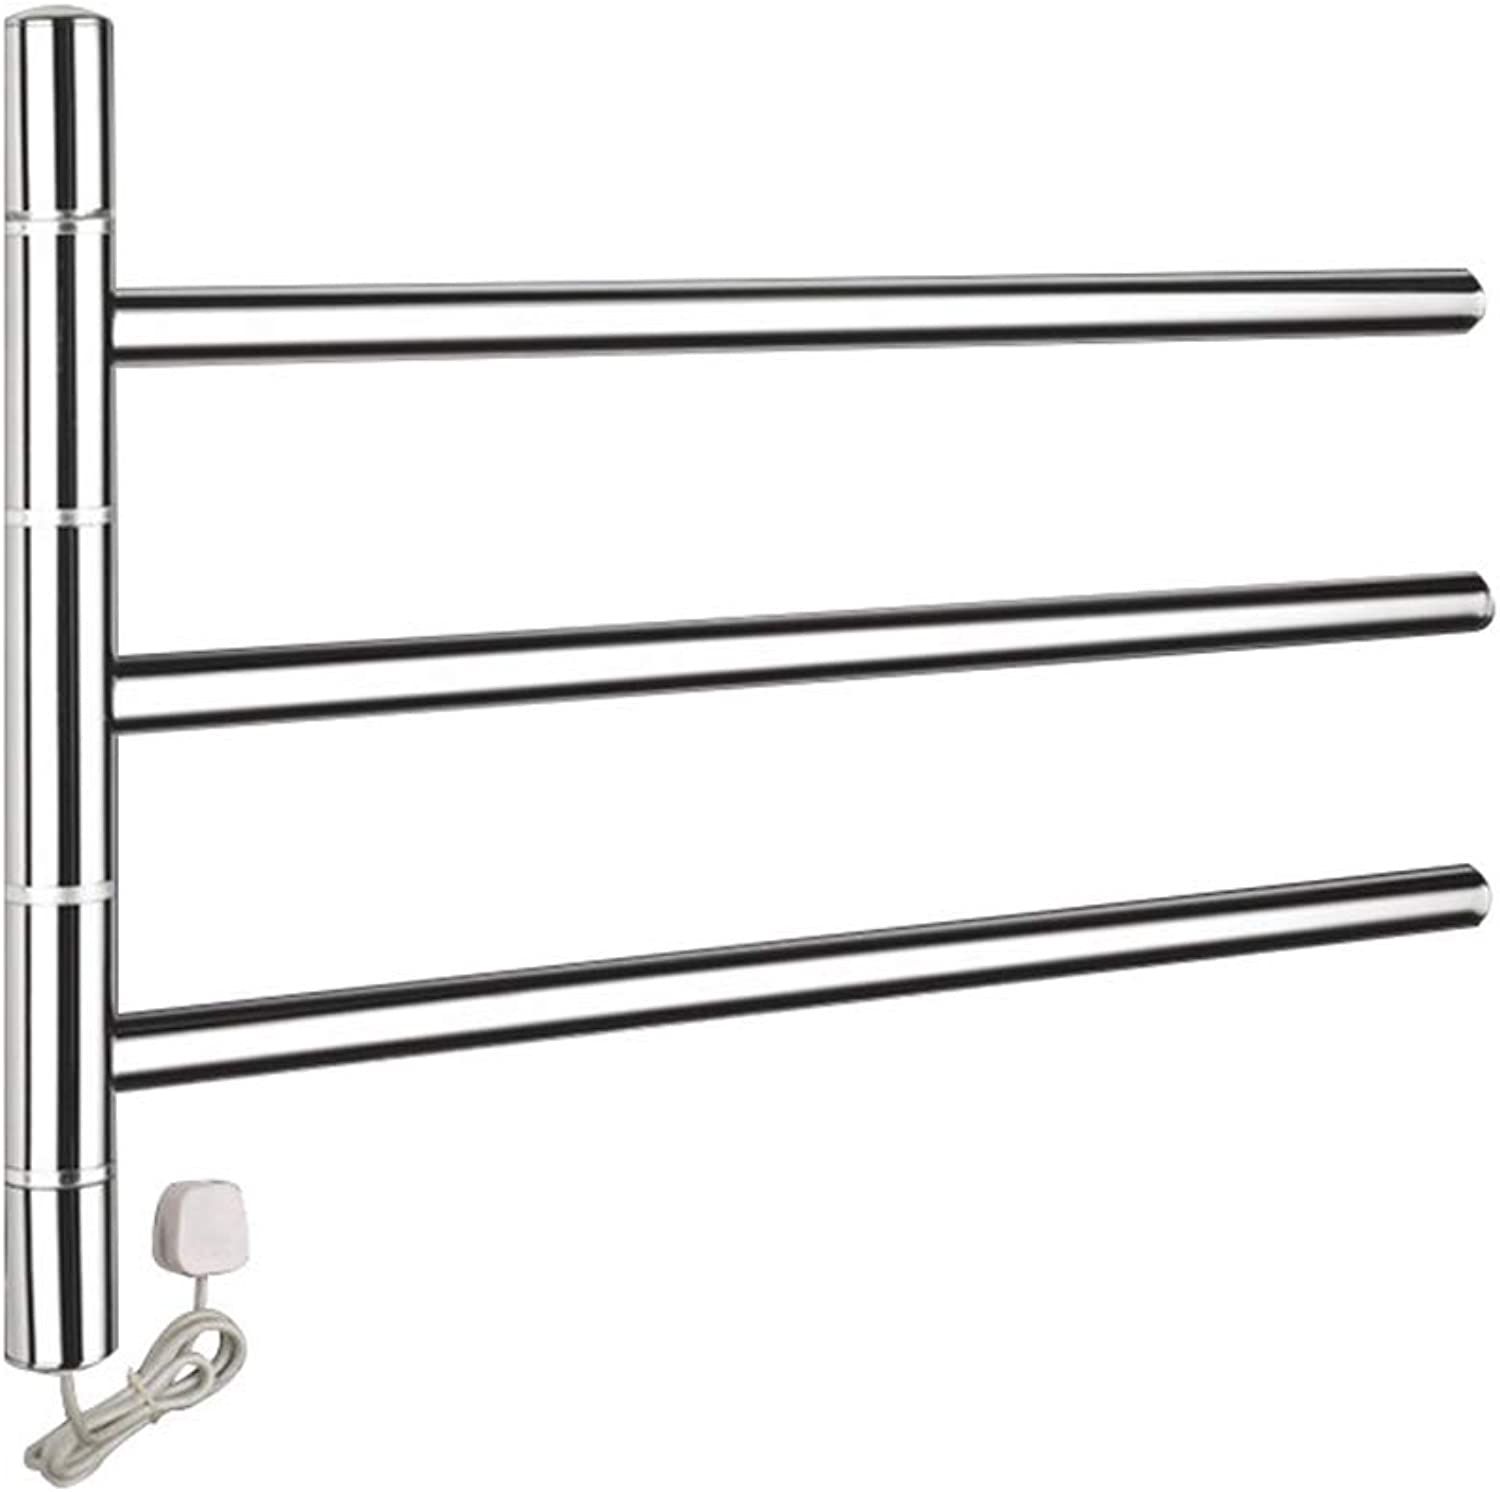 Electric towel rack Household Wall-Mounted Shelf Sterilization dehumidification Intelligent Constant Temperature 304 Stainless Steel for Bathroom Kitchen